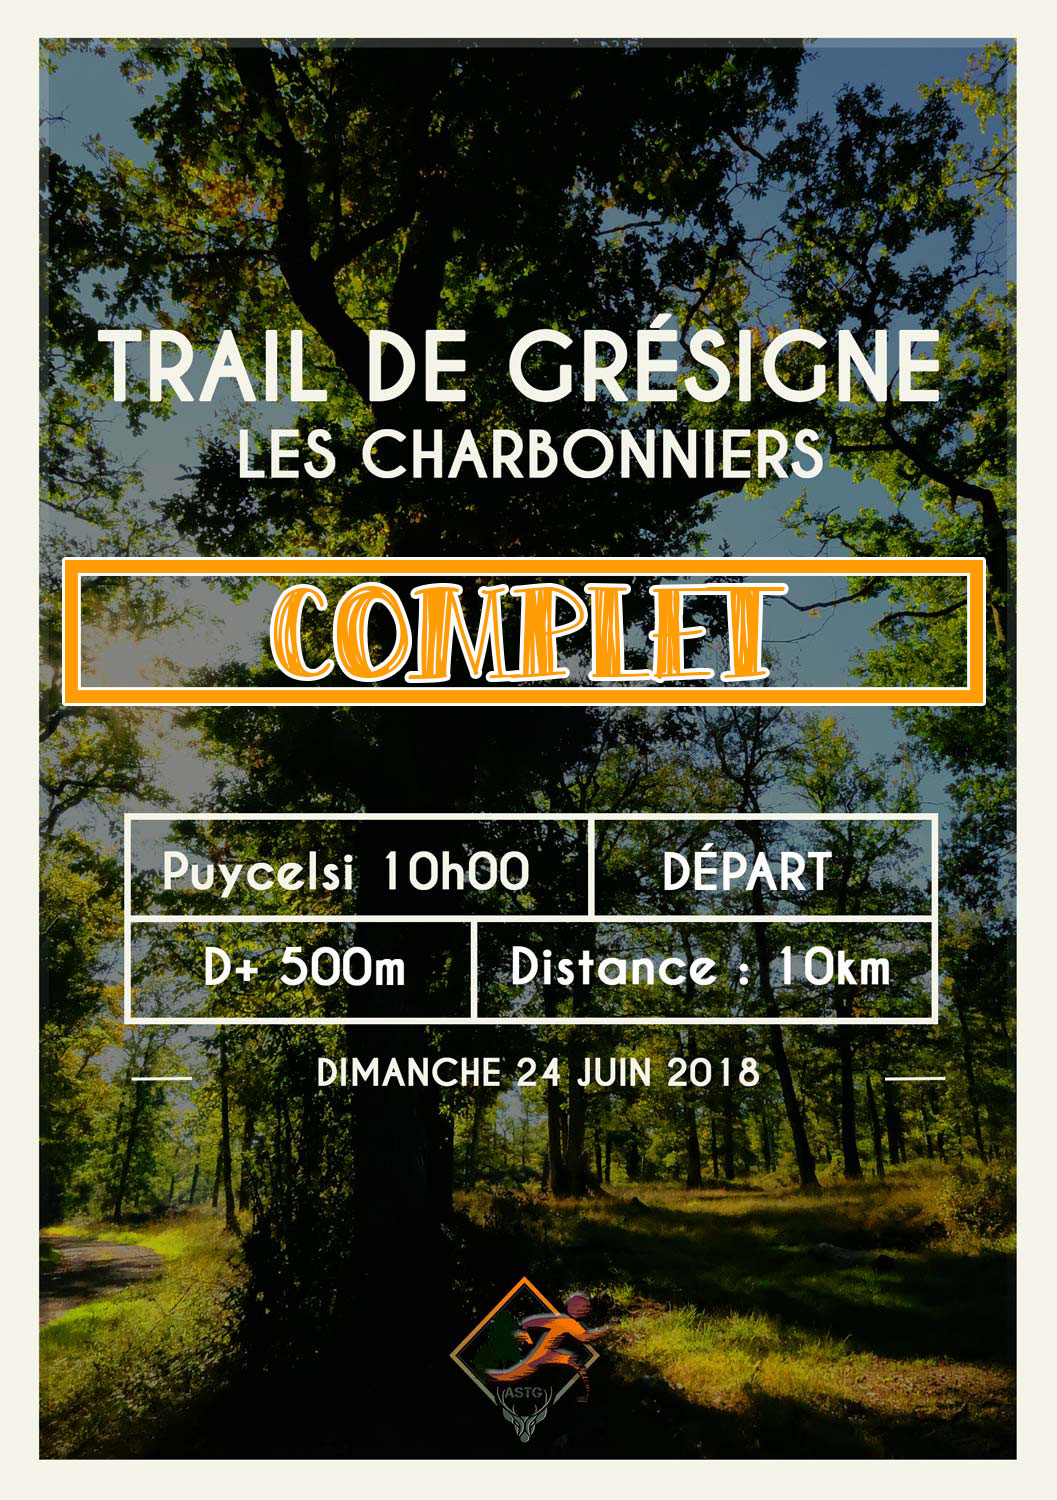 CHARBONNIERS-COMPLET-2018-1500